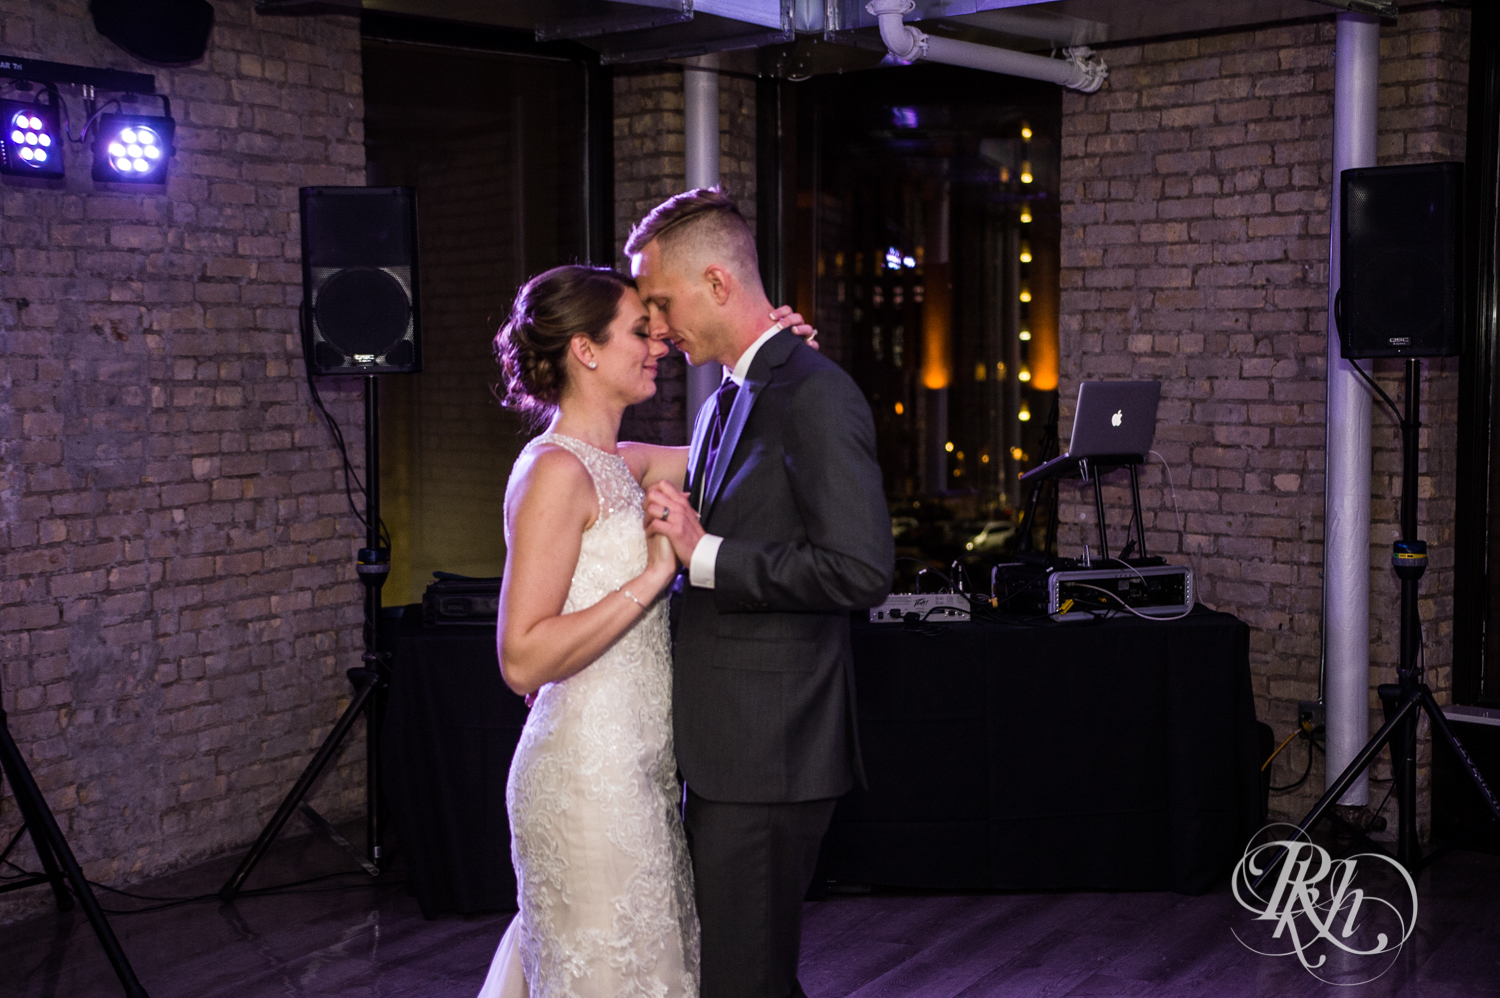 Jillian & Jared - Minnesota Wedding Photography - Lumber Exchange Event Center - RKH Images - Blog (73 of 87).jpg